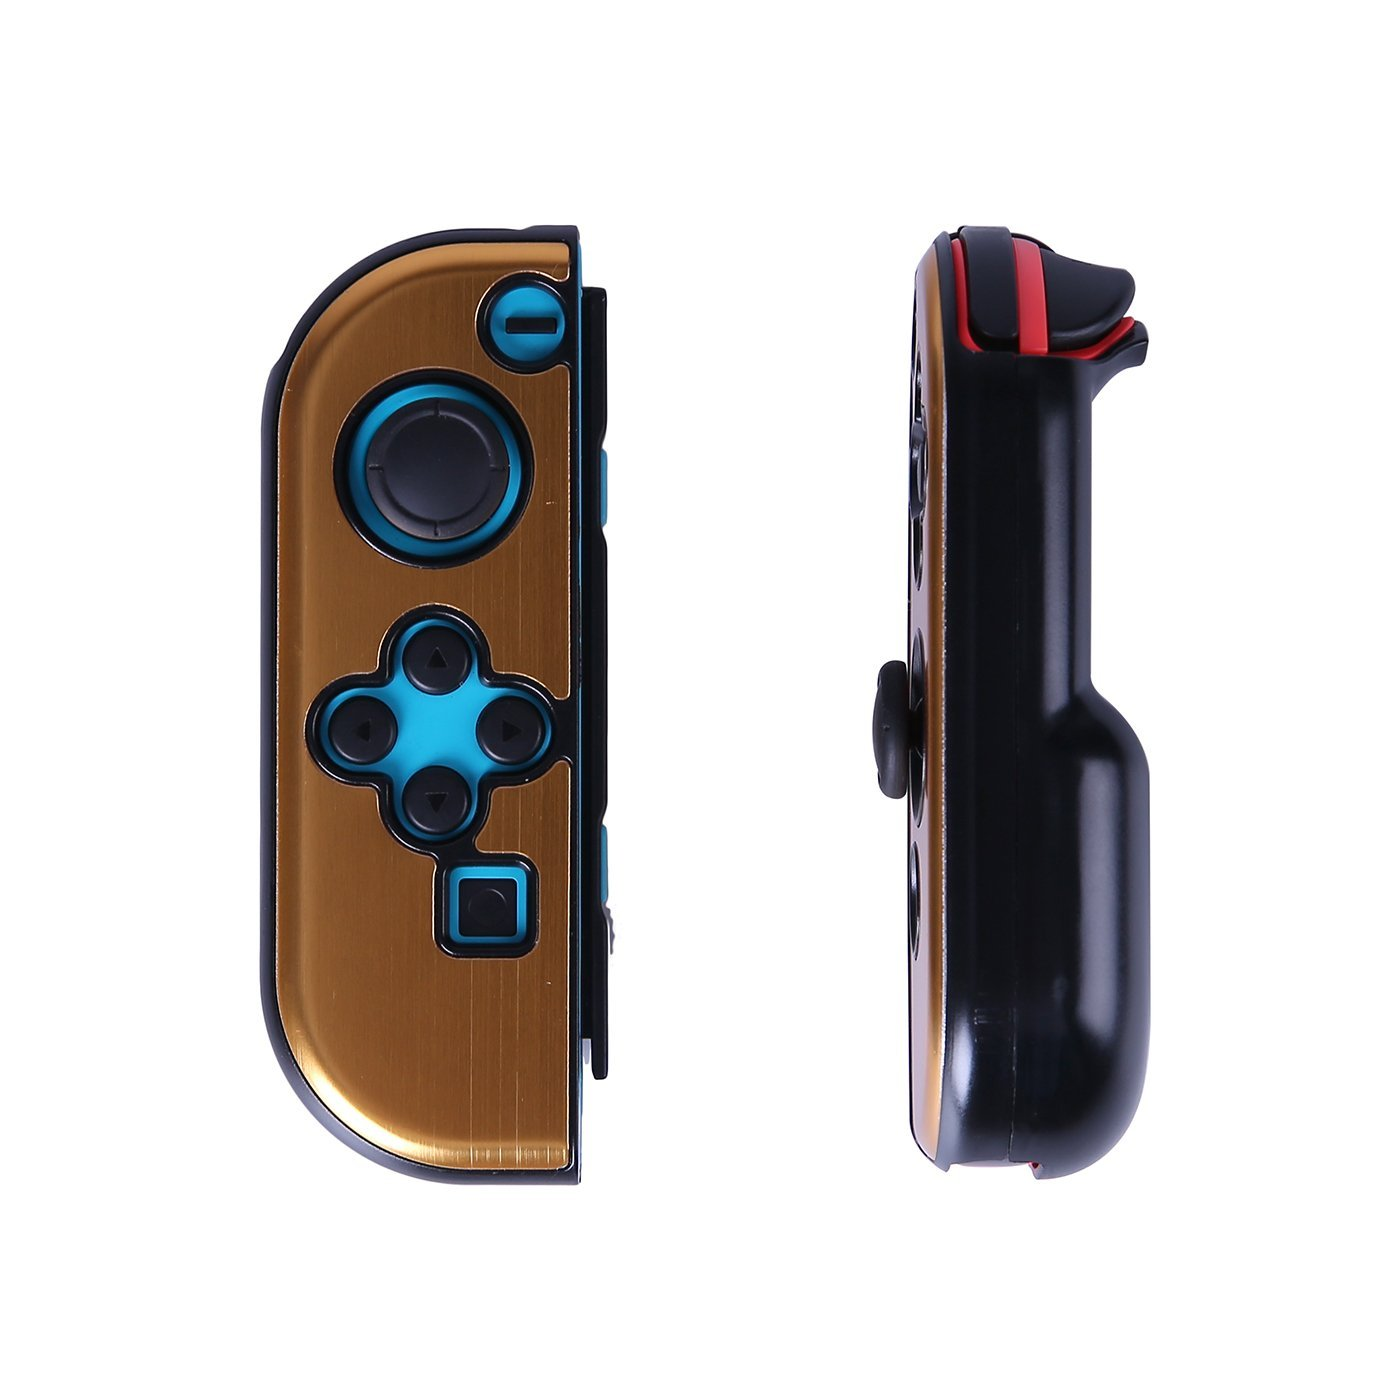 HDE Protective Cover for Nintendo Switch Joy-Con Controller Plastic Protectors Snap On Shell with Comfort Contoured Back (Gold)